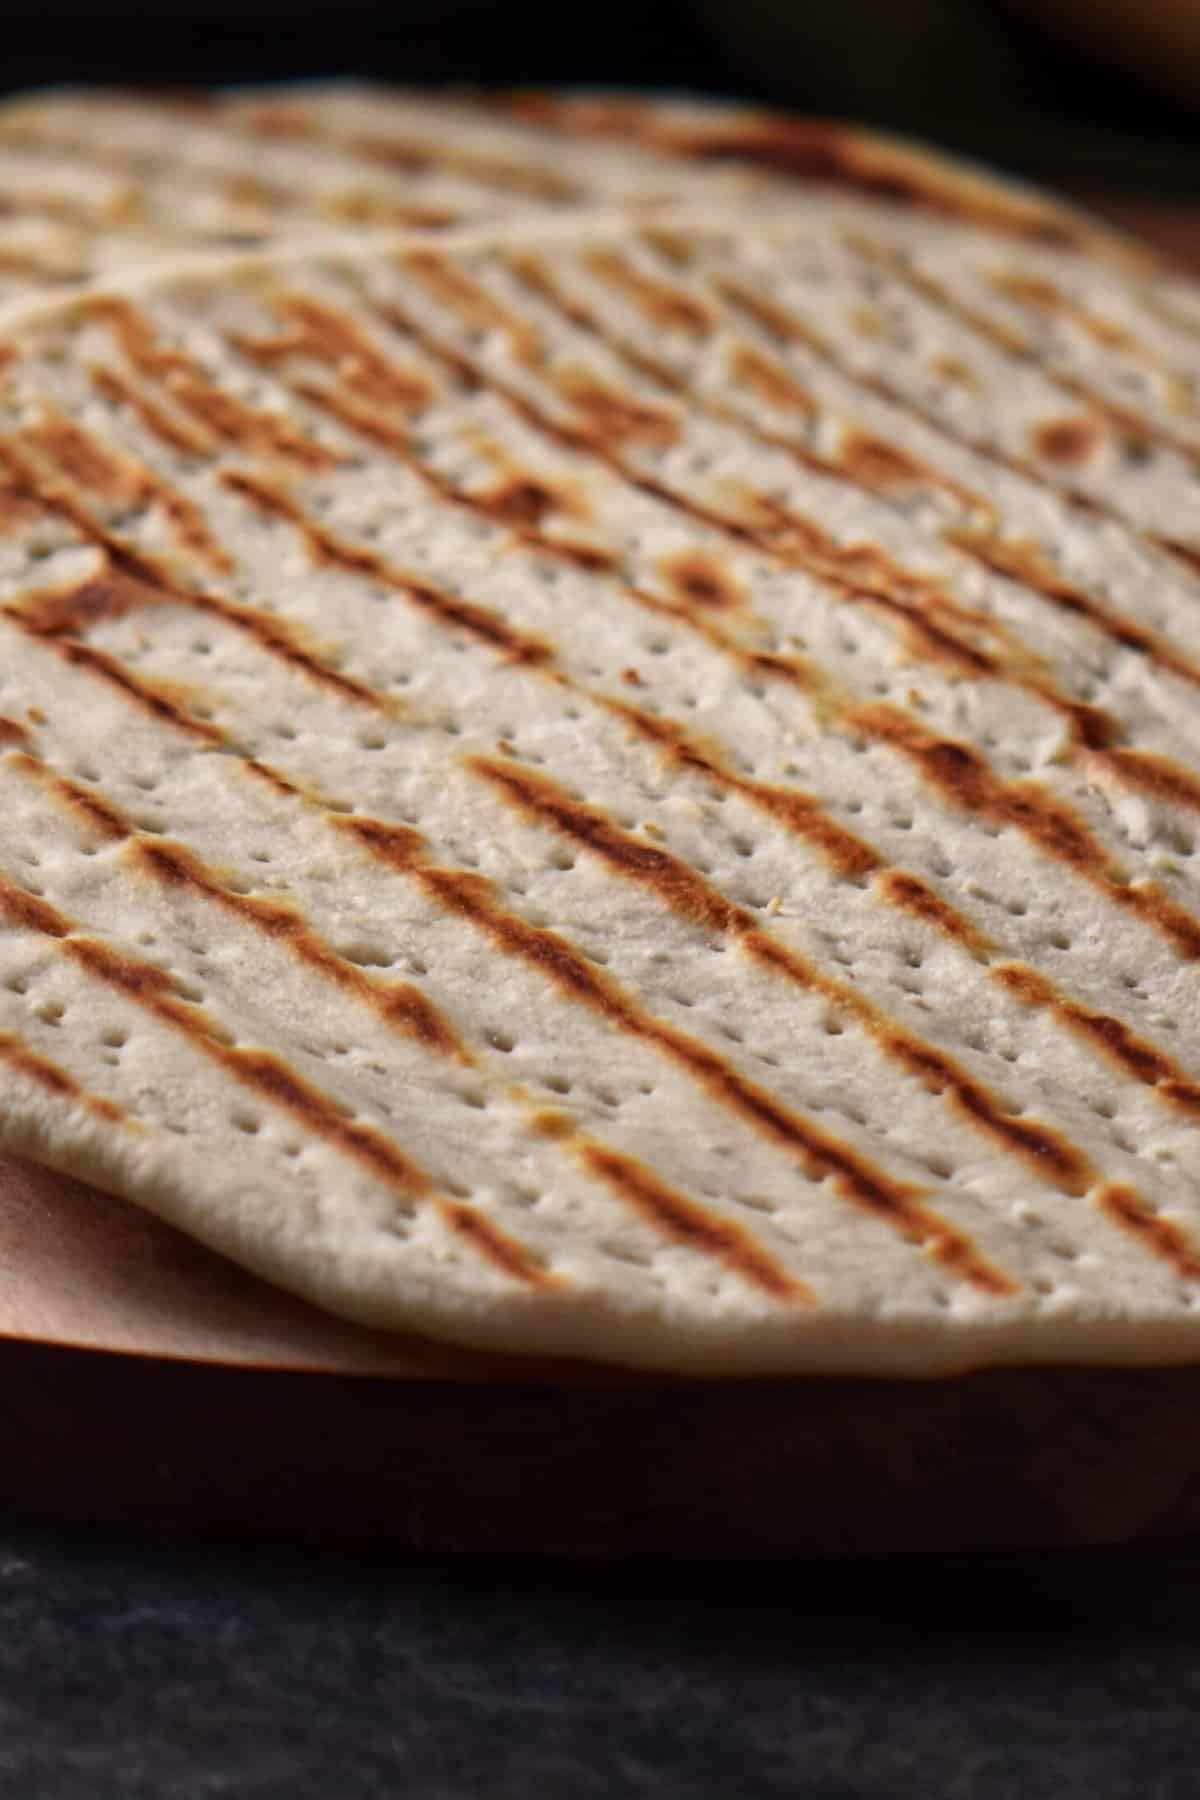 Pan grilled piadina on a wooden board.